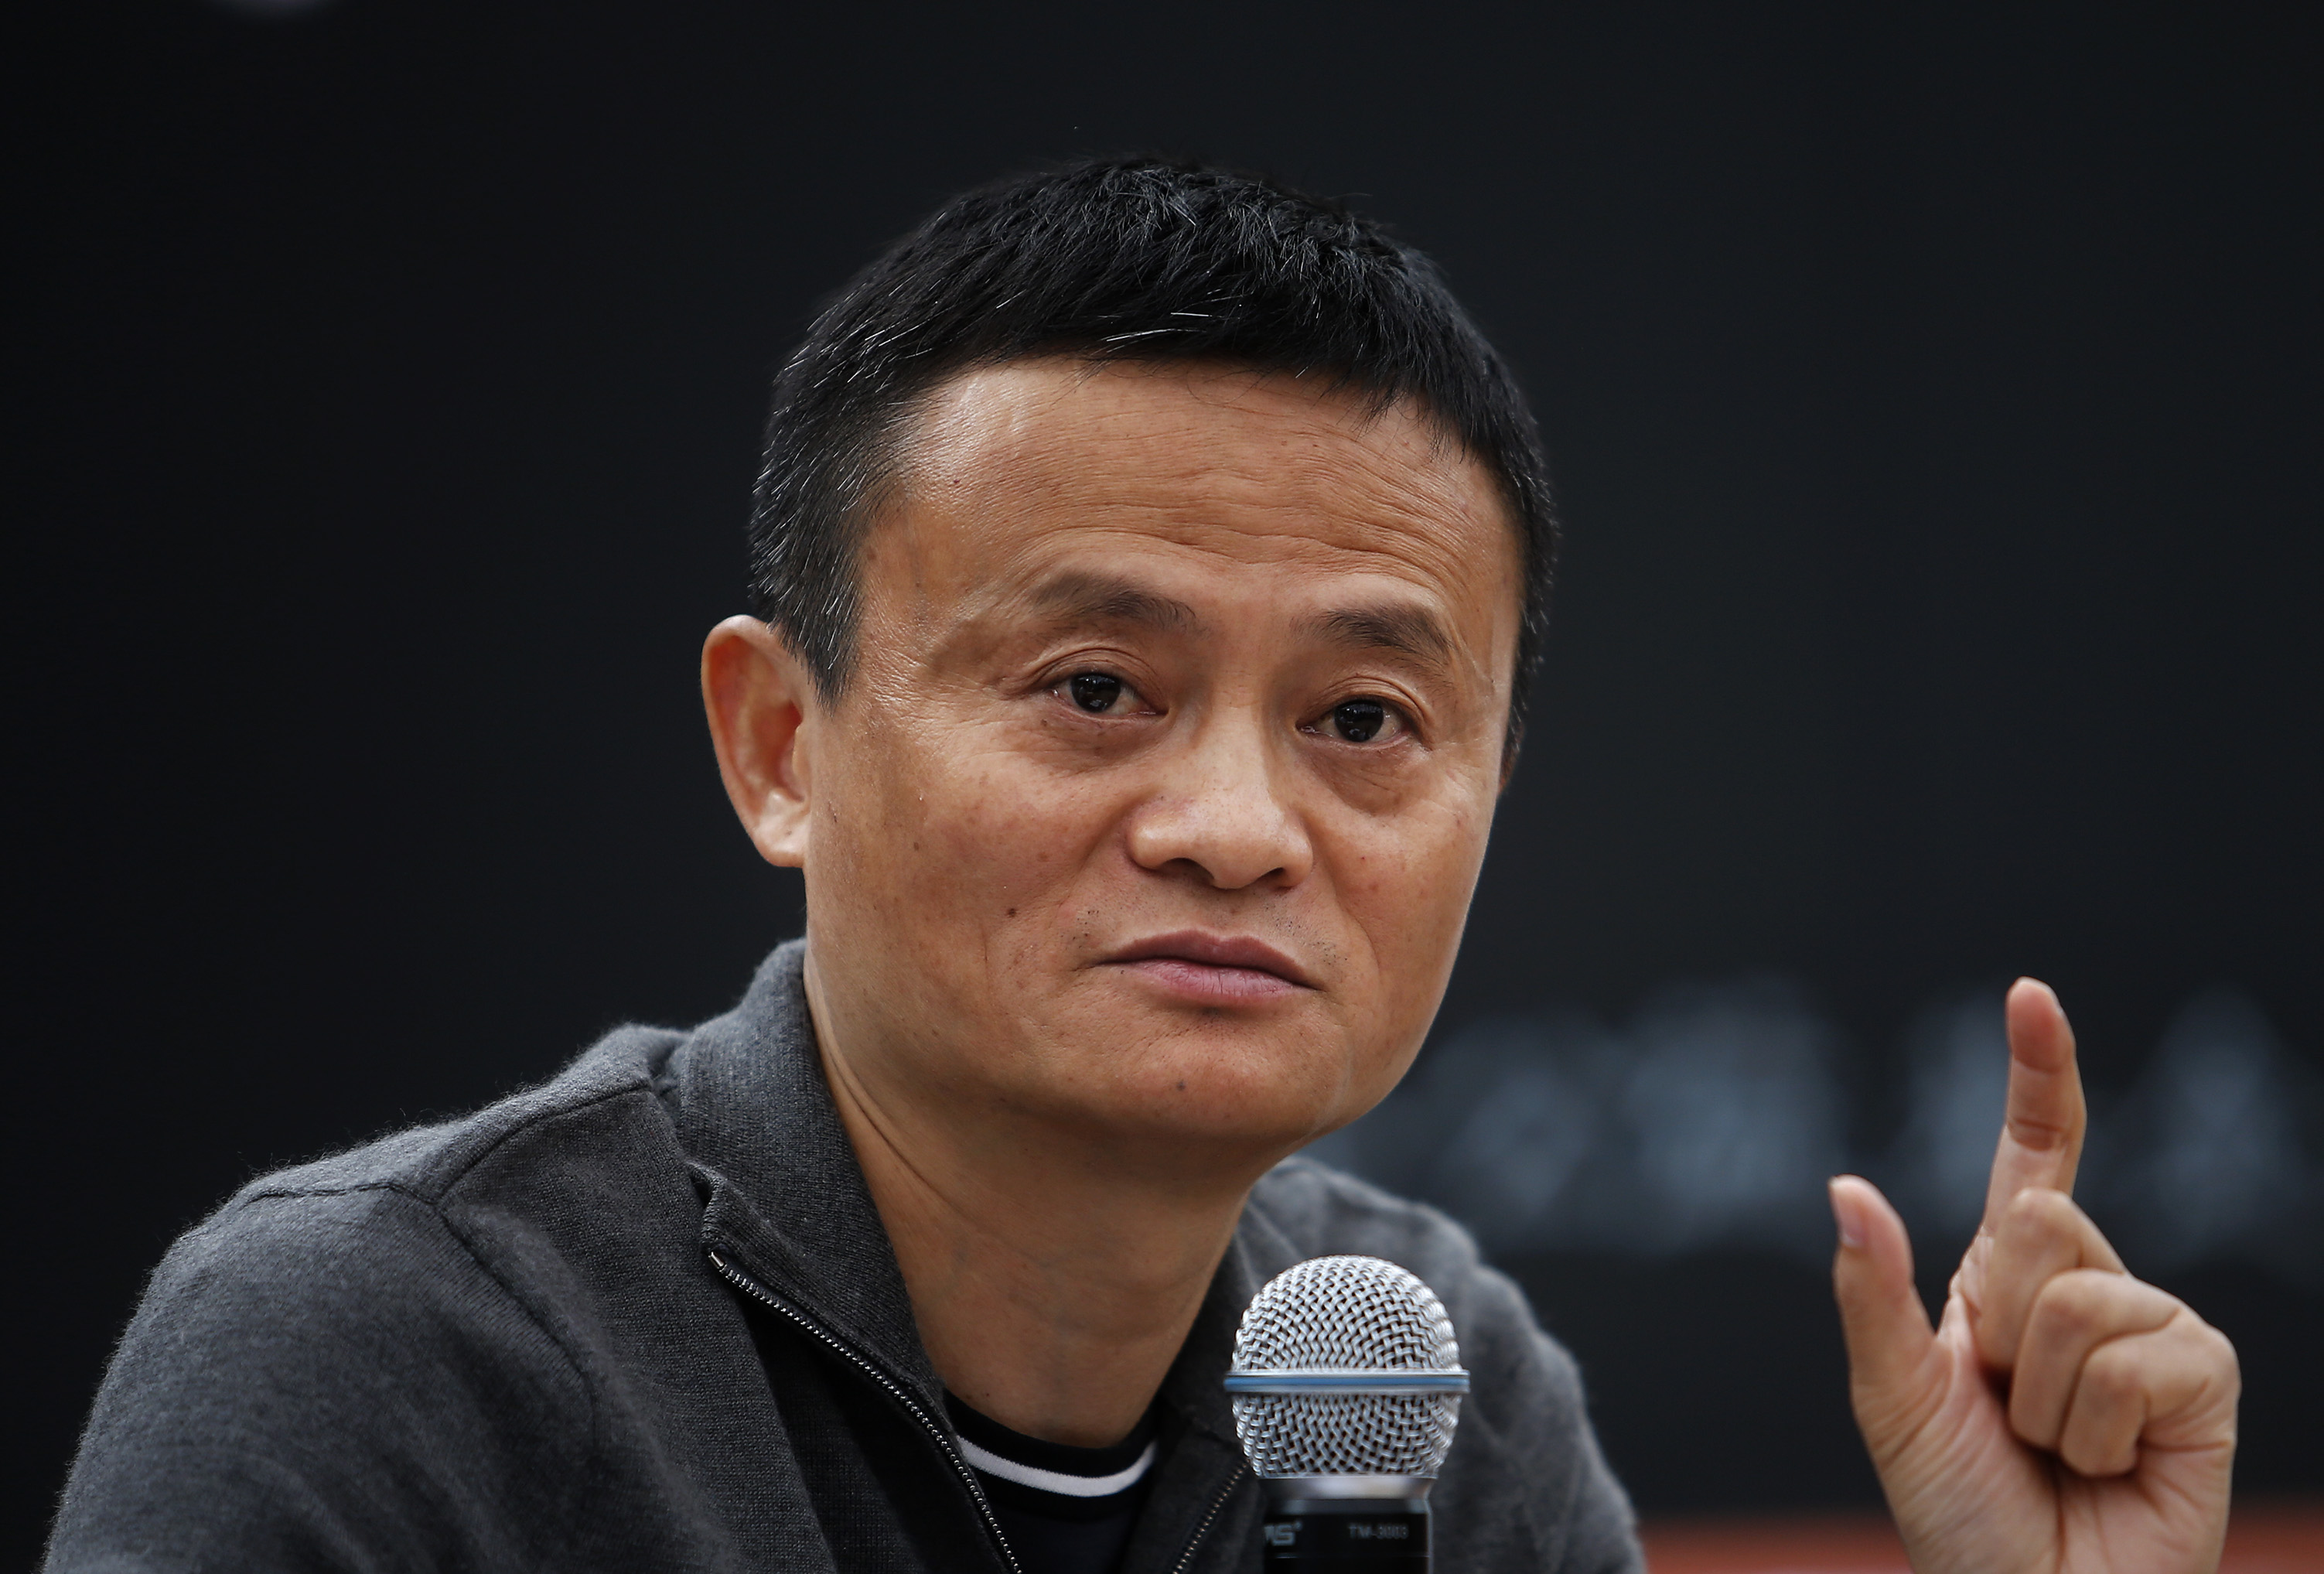 Alibaba Founder and CEO, Jack Ma